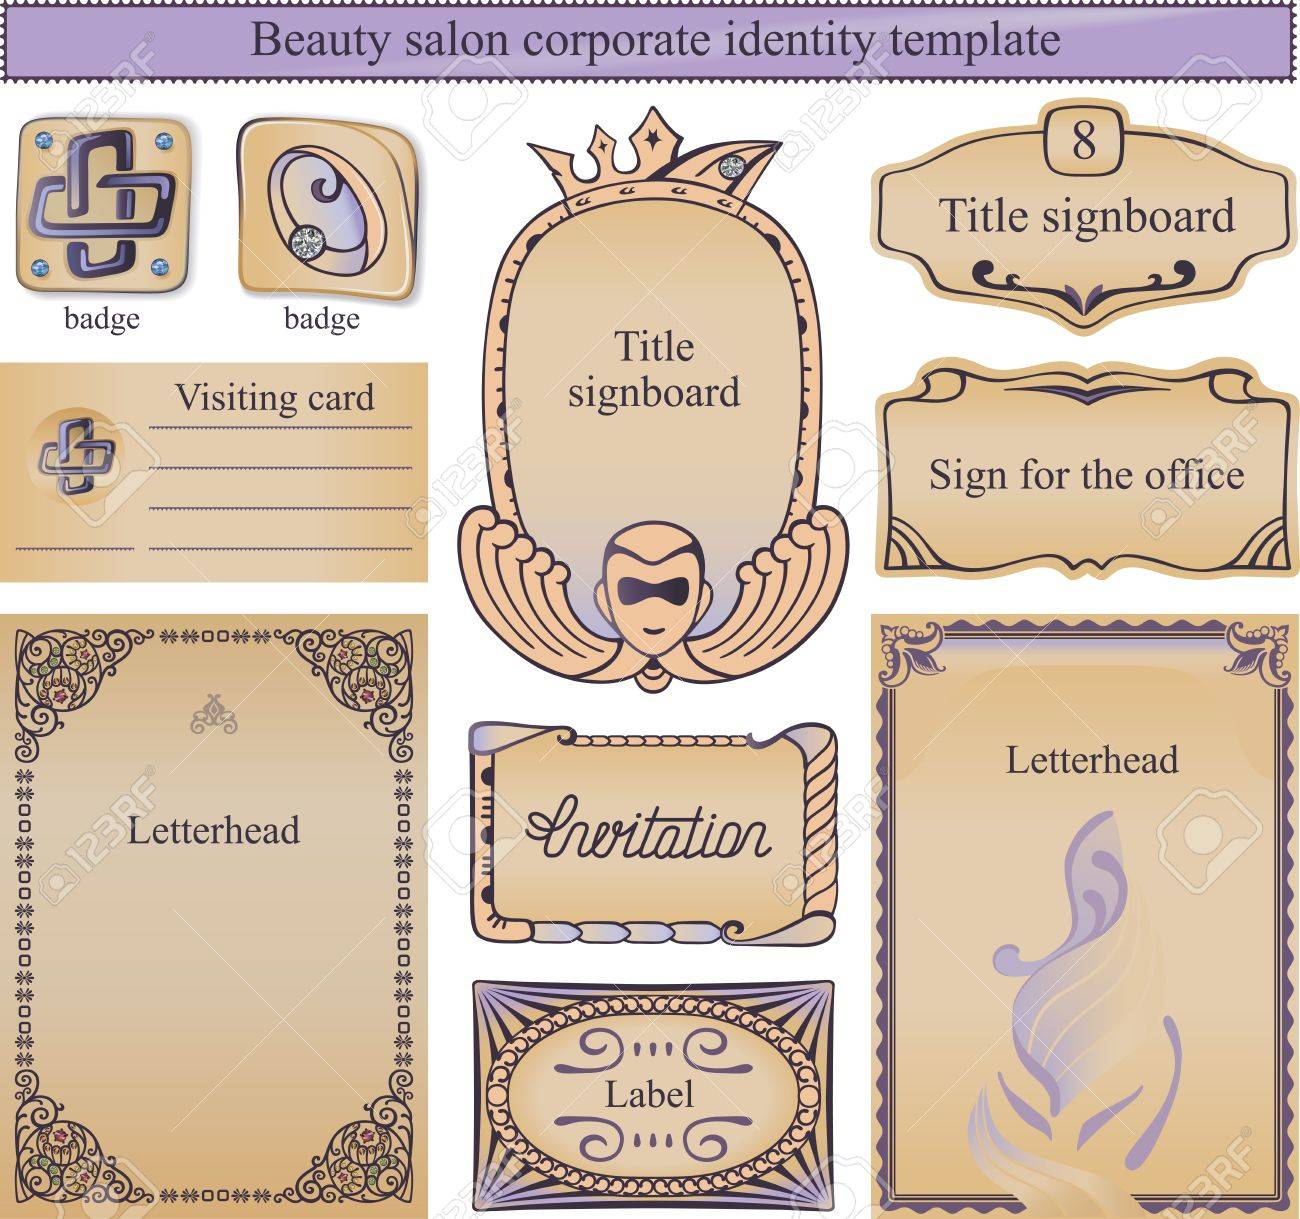 Corporate identity text template for a beauty salon, eclecticism inspired to embellish your layout.Image contains gradients and gradient meshes. Stock Vector - 21970792